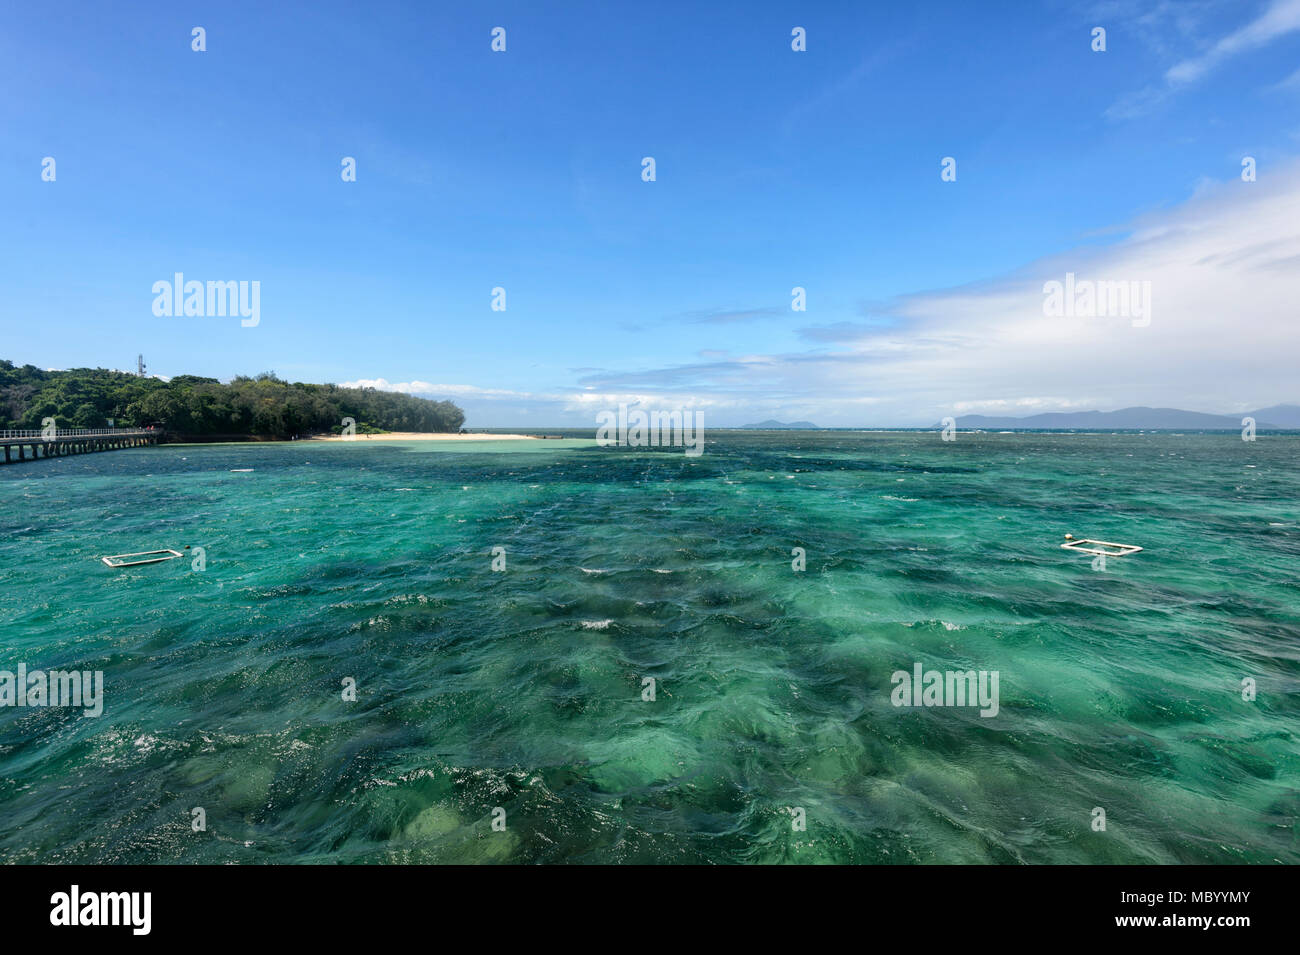 Turquoise waters of Green Island, a coral cay off Cairns in the Great Barrier Reef Marine National Park, Far North Queensland, QLD, FNQ, GBR, Australi - Stock Image